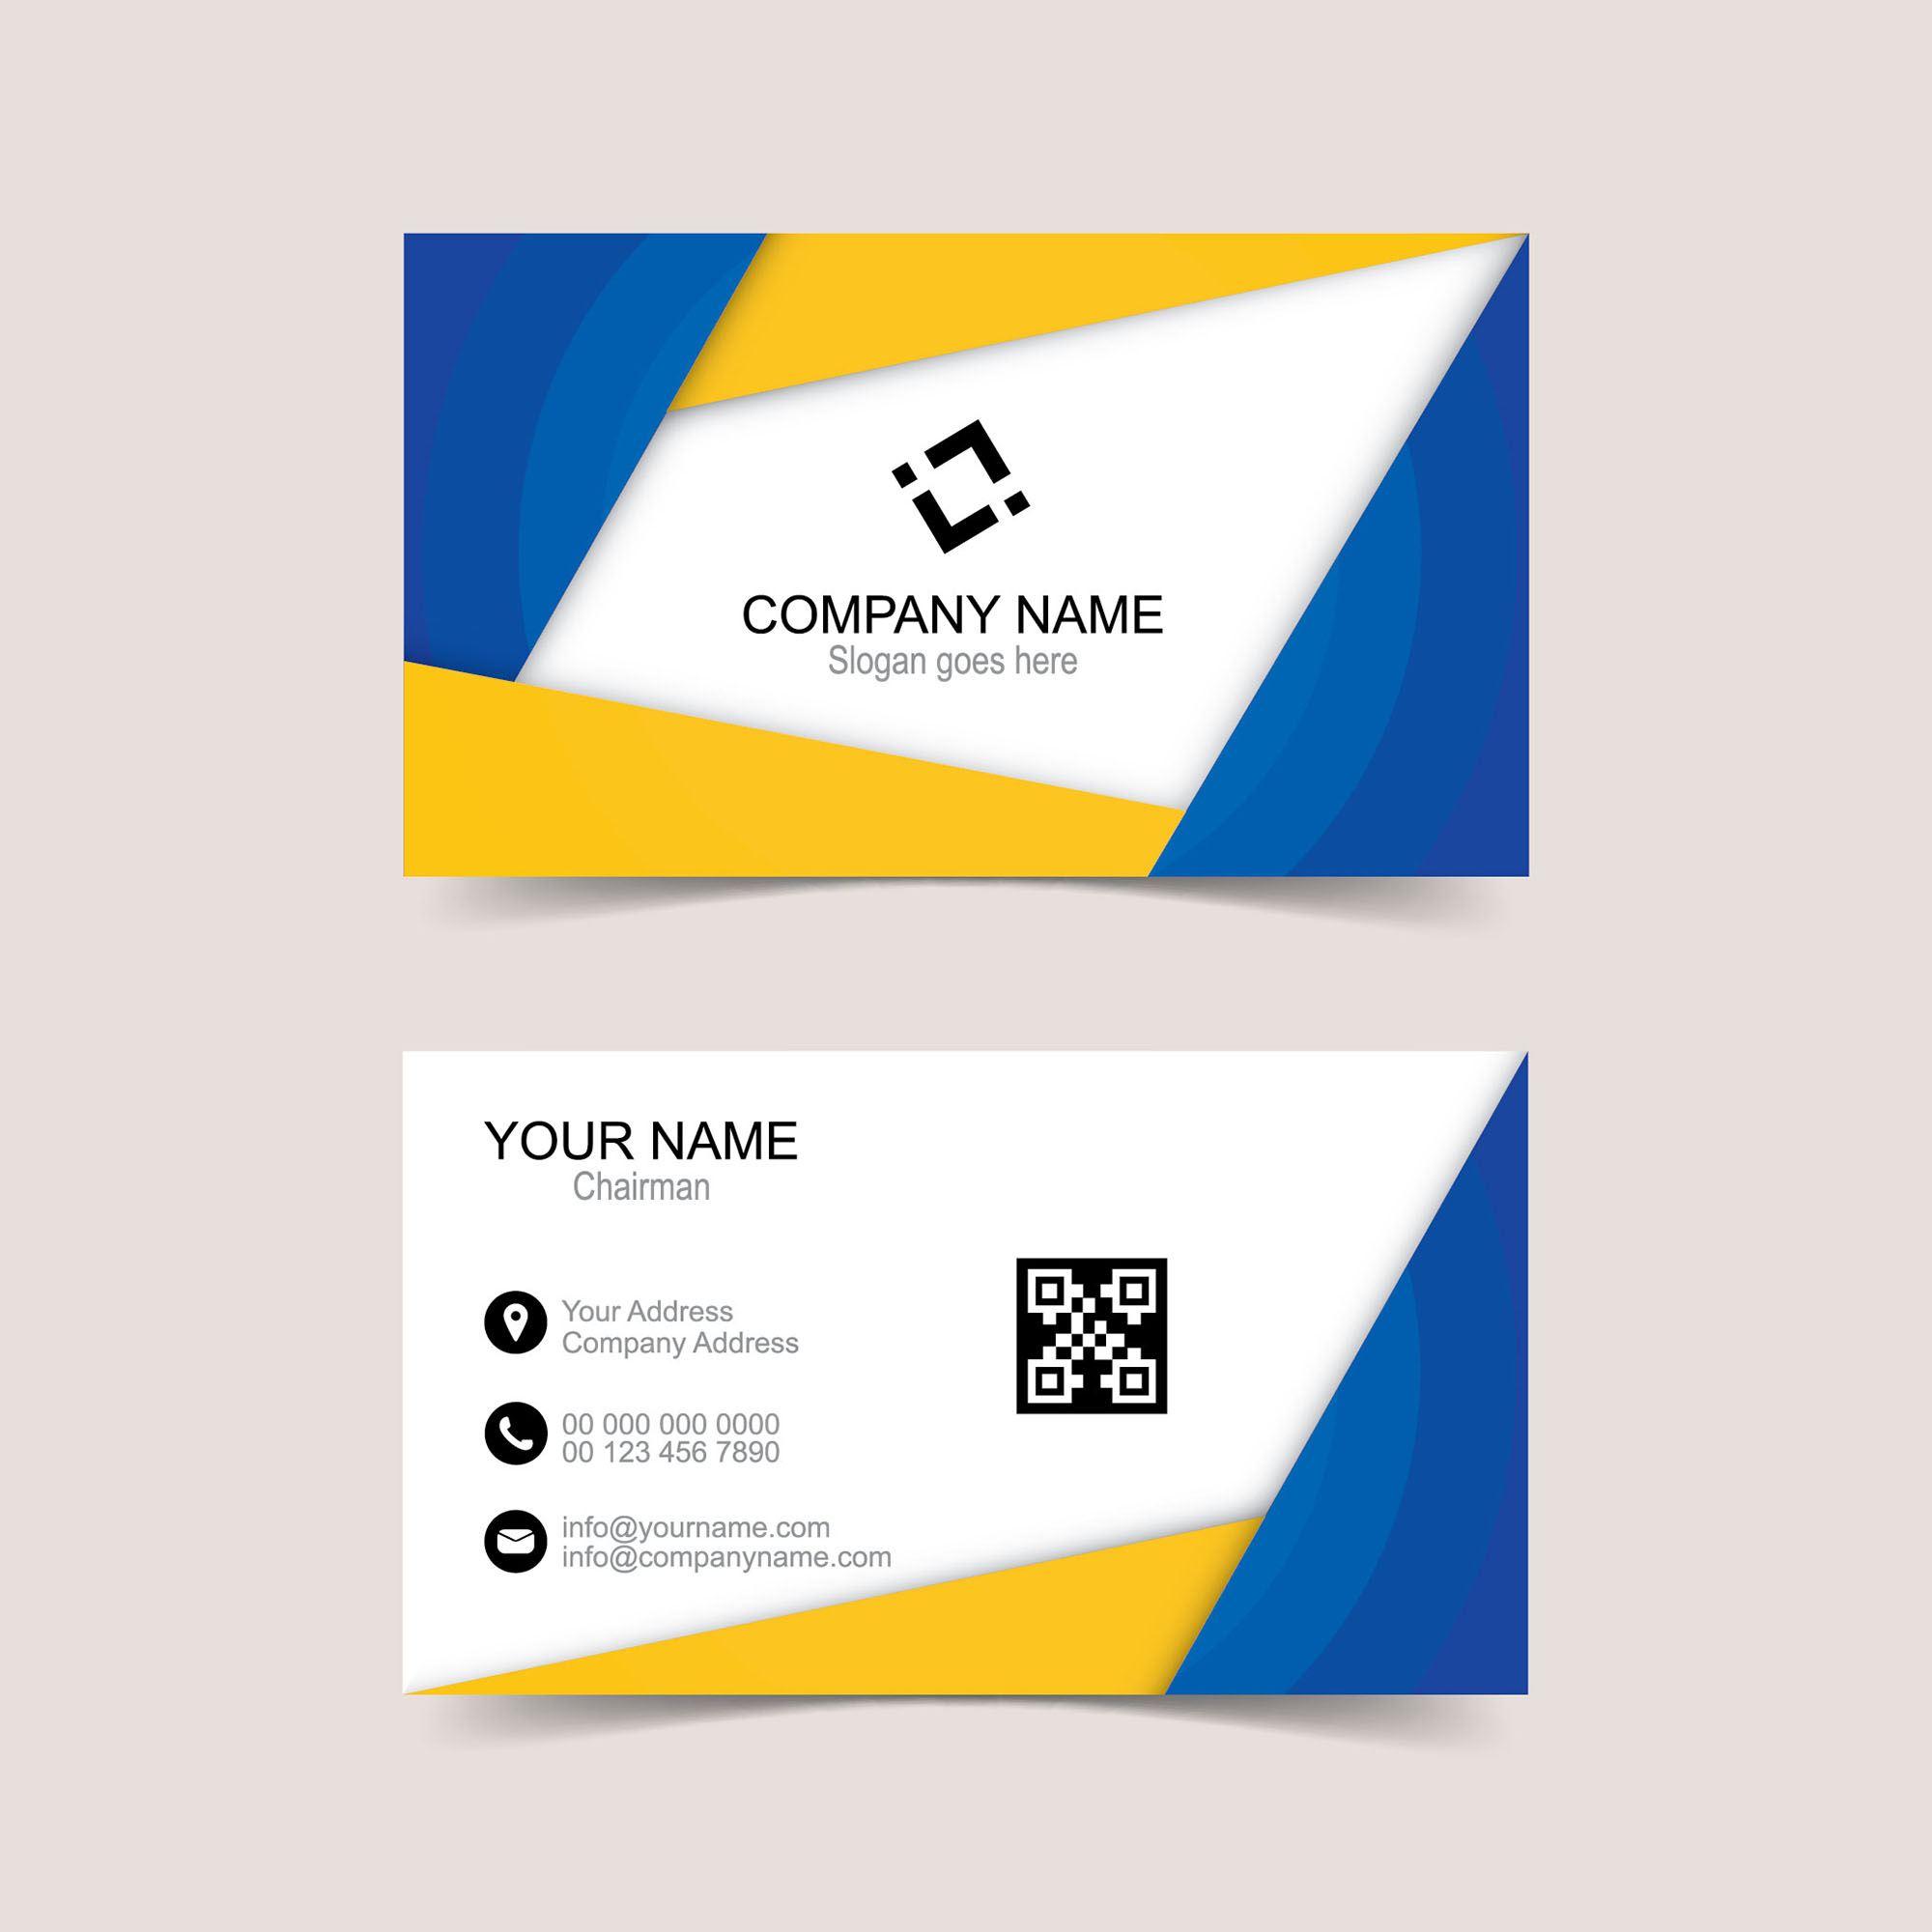 Vector creative business card template free download wisxi business card business cards business card design business card template design templates flashek Gallery